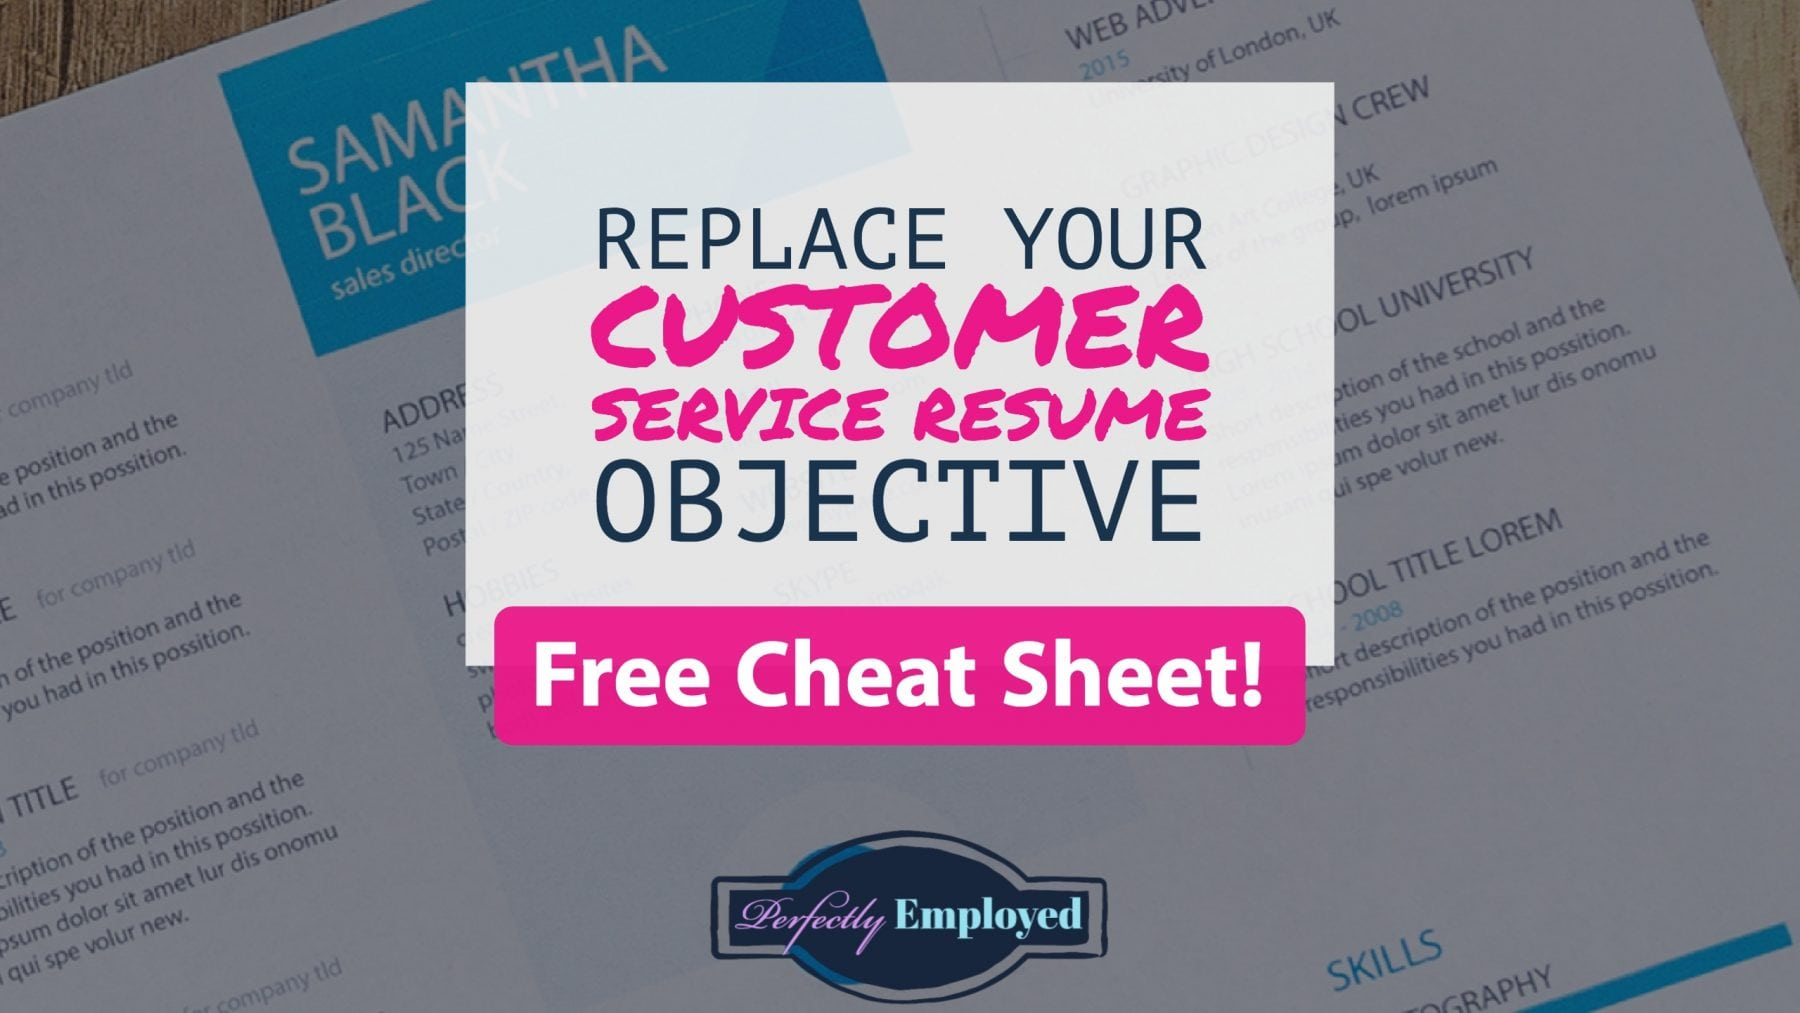 Replace your customer service resume objective - feature